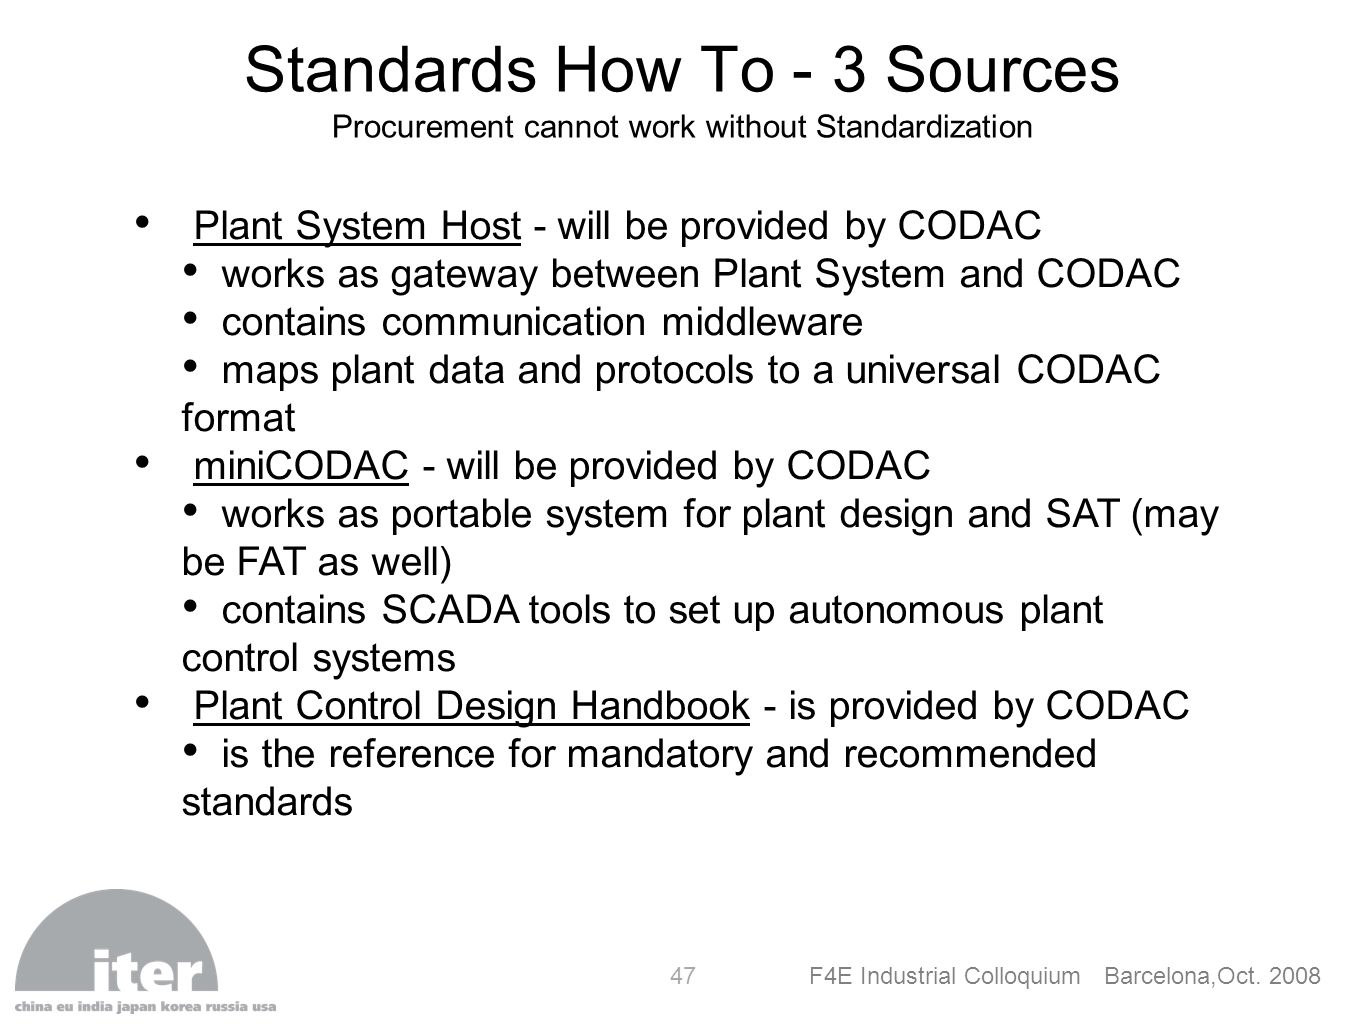 Standards How To - 3 Sources